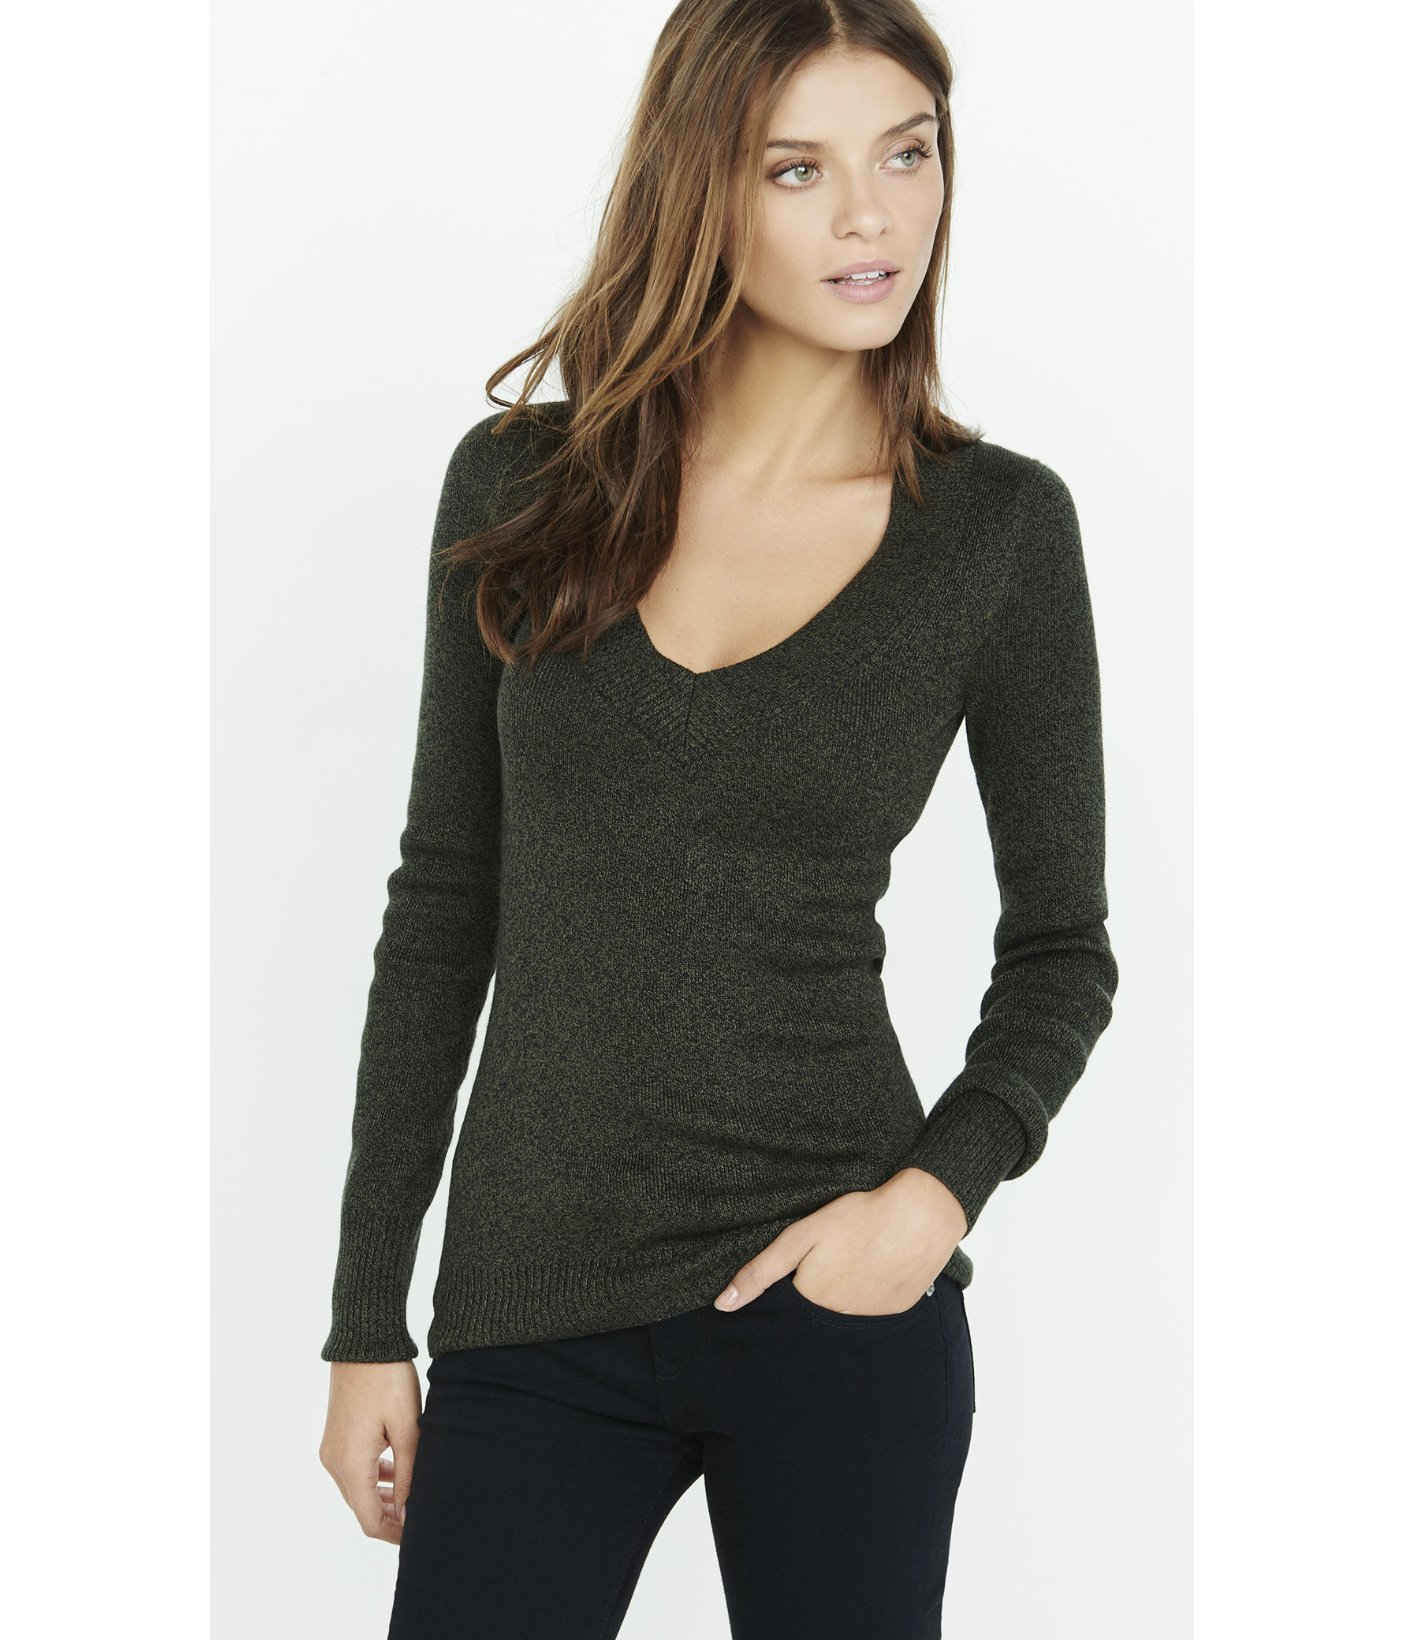 Express Marl Fitted V-neck Sweater in Green | Lyst